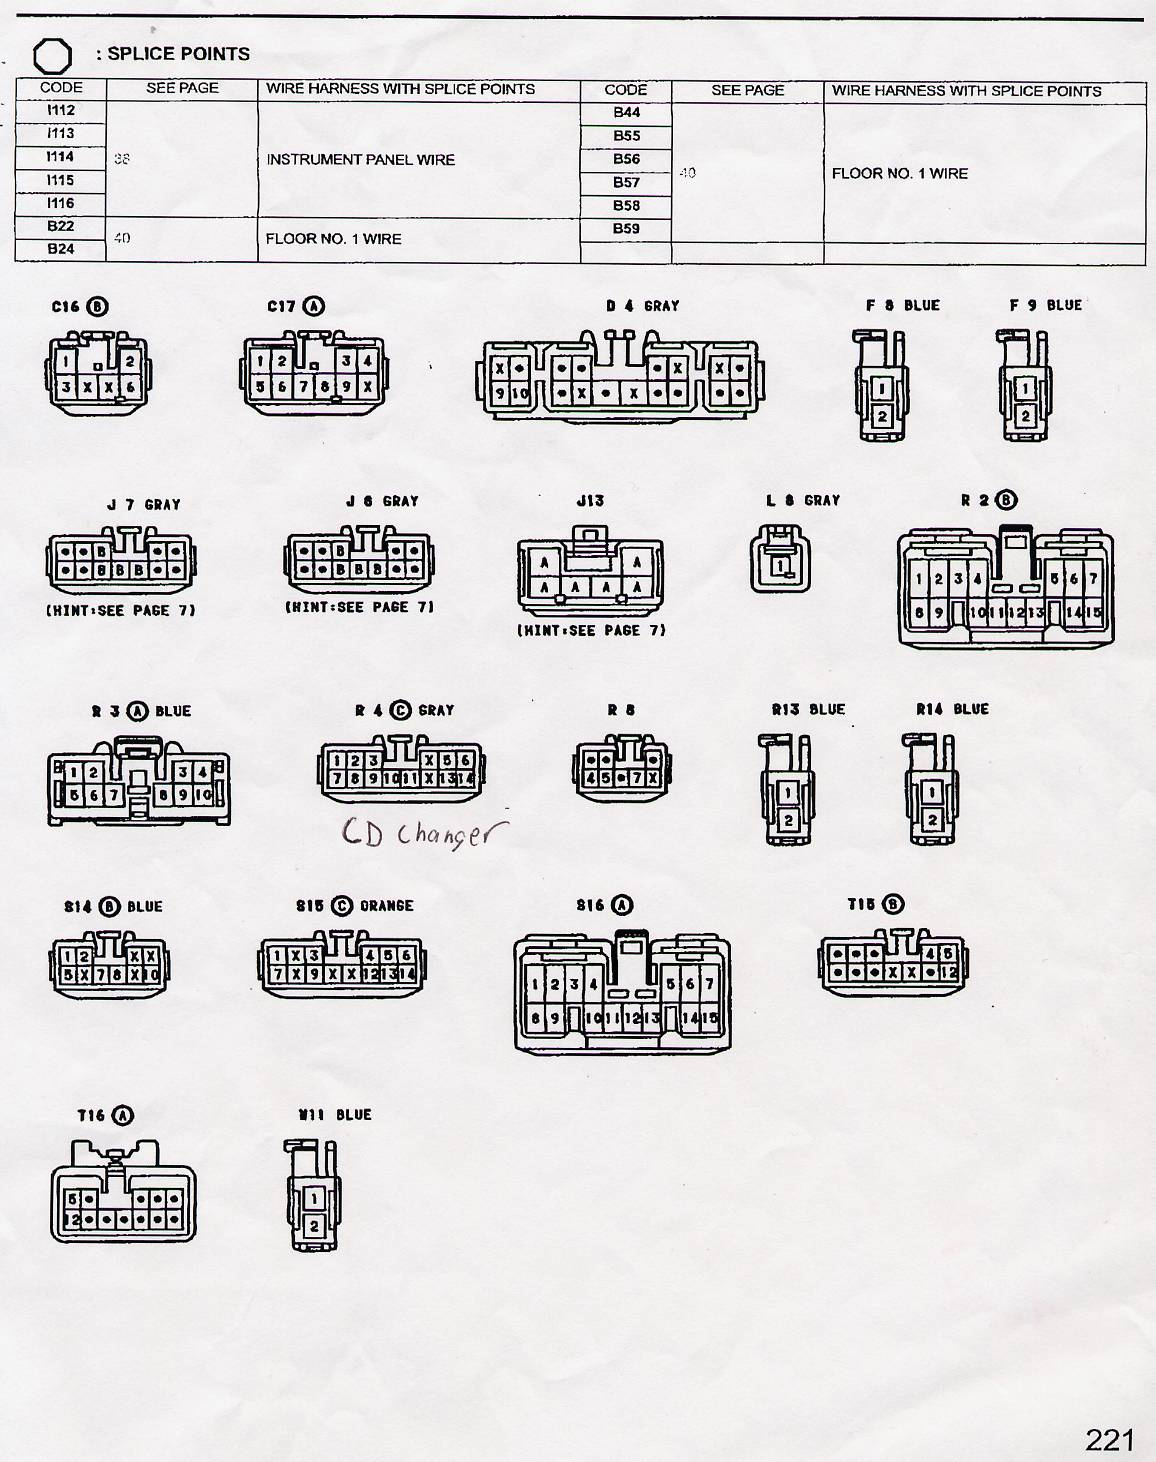 Gs400 Radio Wiring Diagram - Schema Wiring Diagram - Aftermarket Radio Wiring Diagram